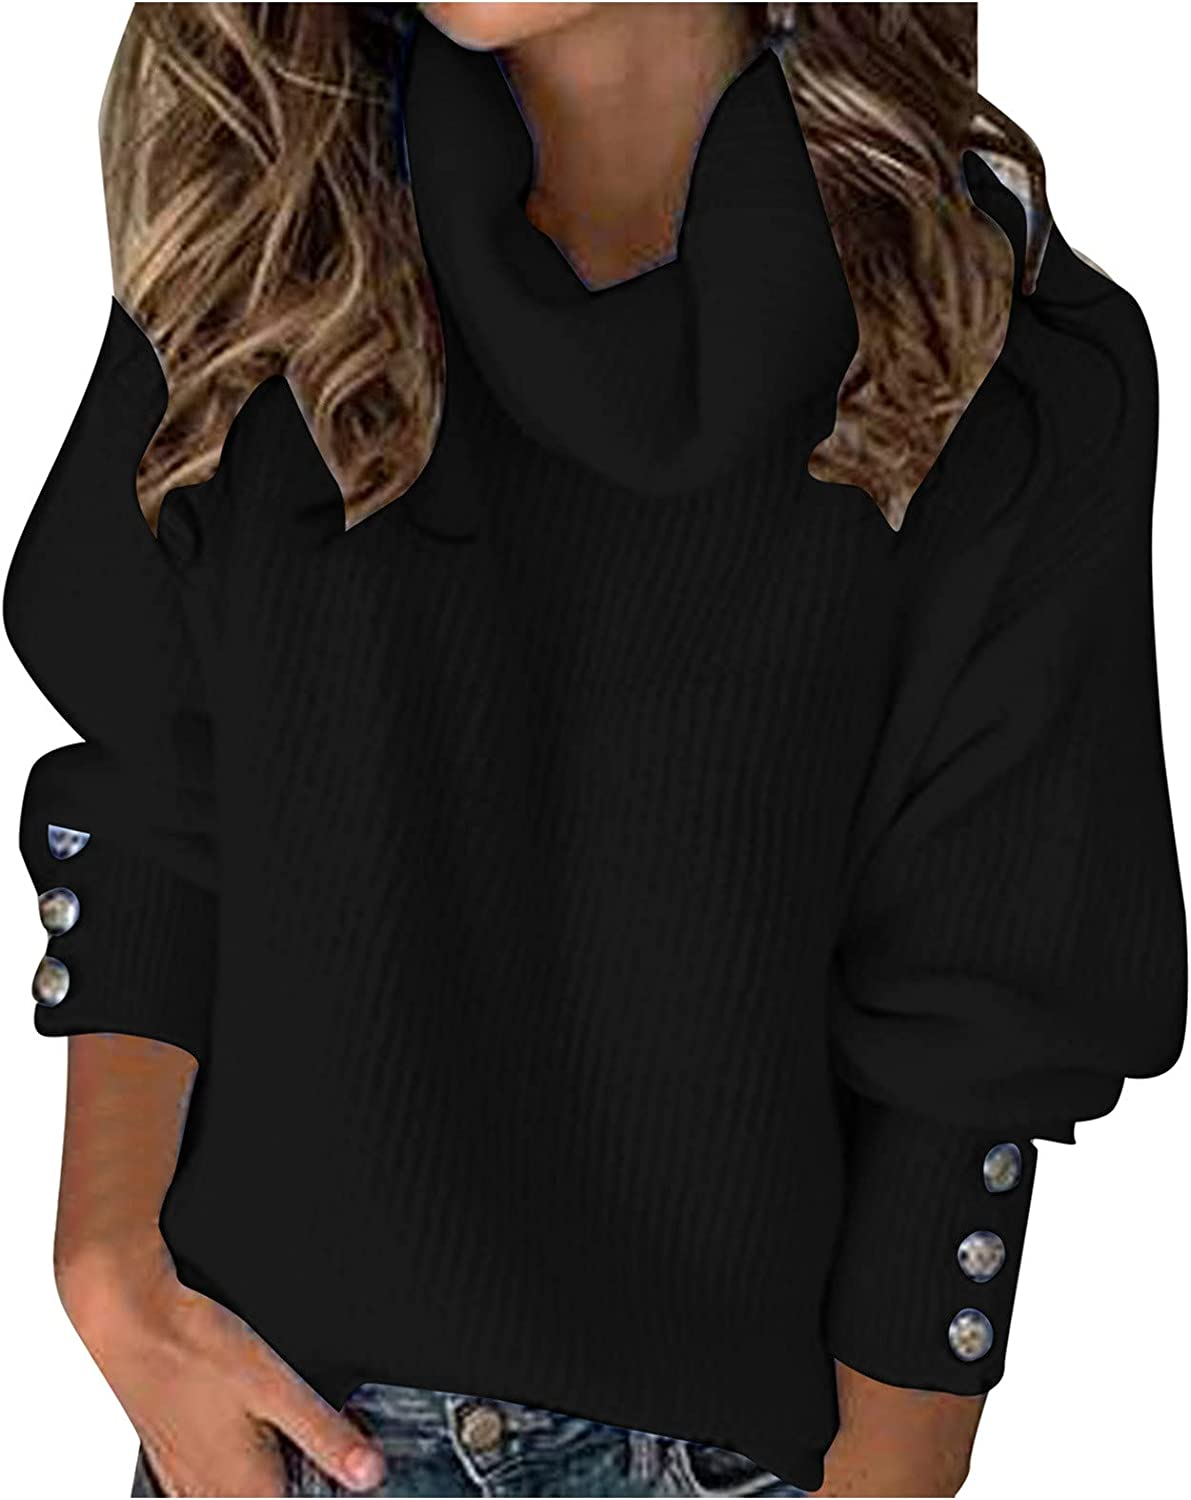 Sweaters for Women Casual Winter Turtleneck Long Sleeve Sweater Casual Loose Pullover Sweater Jumper Tops Blouses